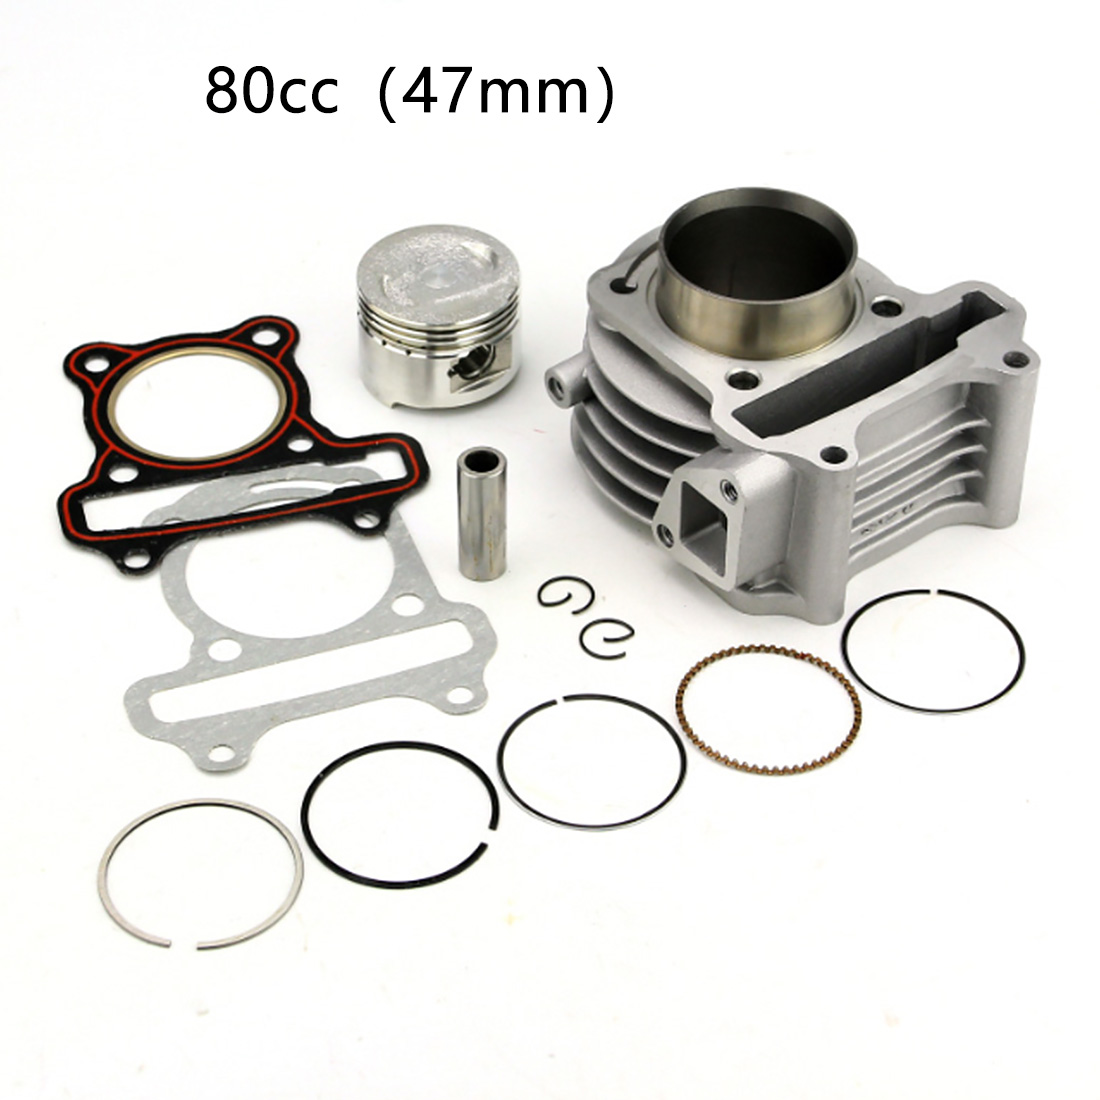 Scooter Cylinder Kit Crankshaft Universal Engine Part Big Bore Practical Piston Ring Aluminum Alloy With Gasket Durable For GY6